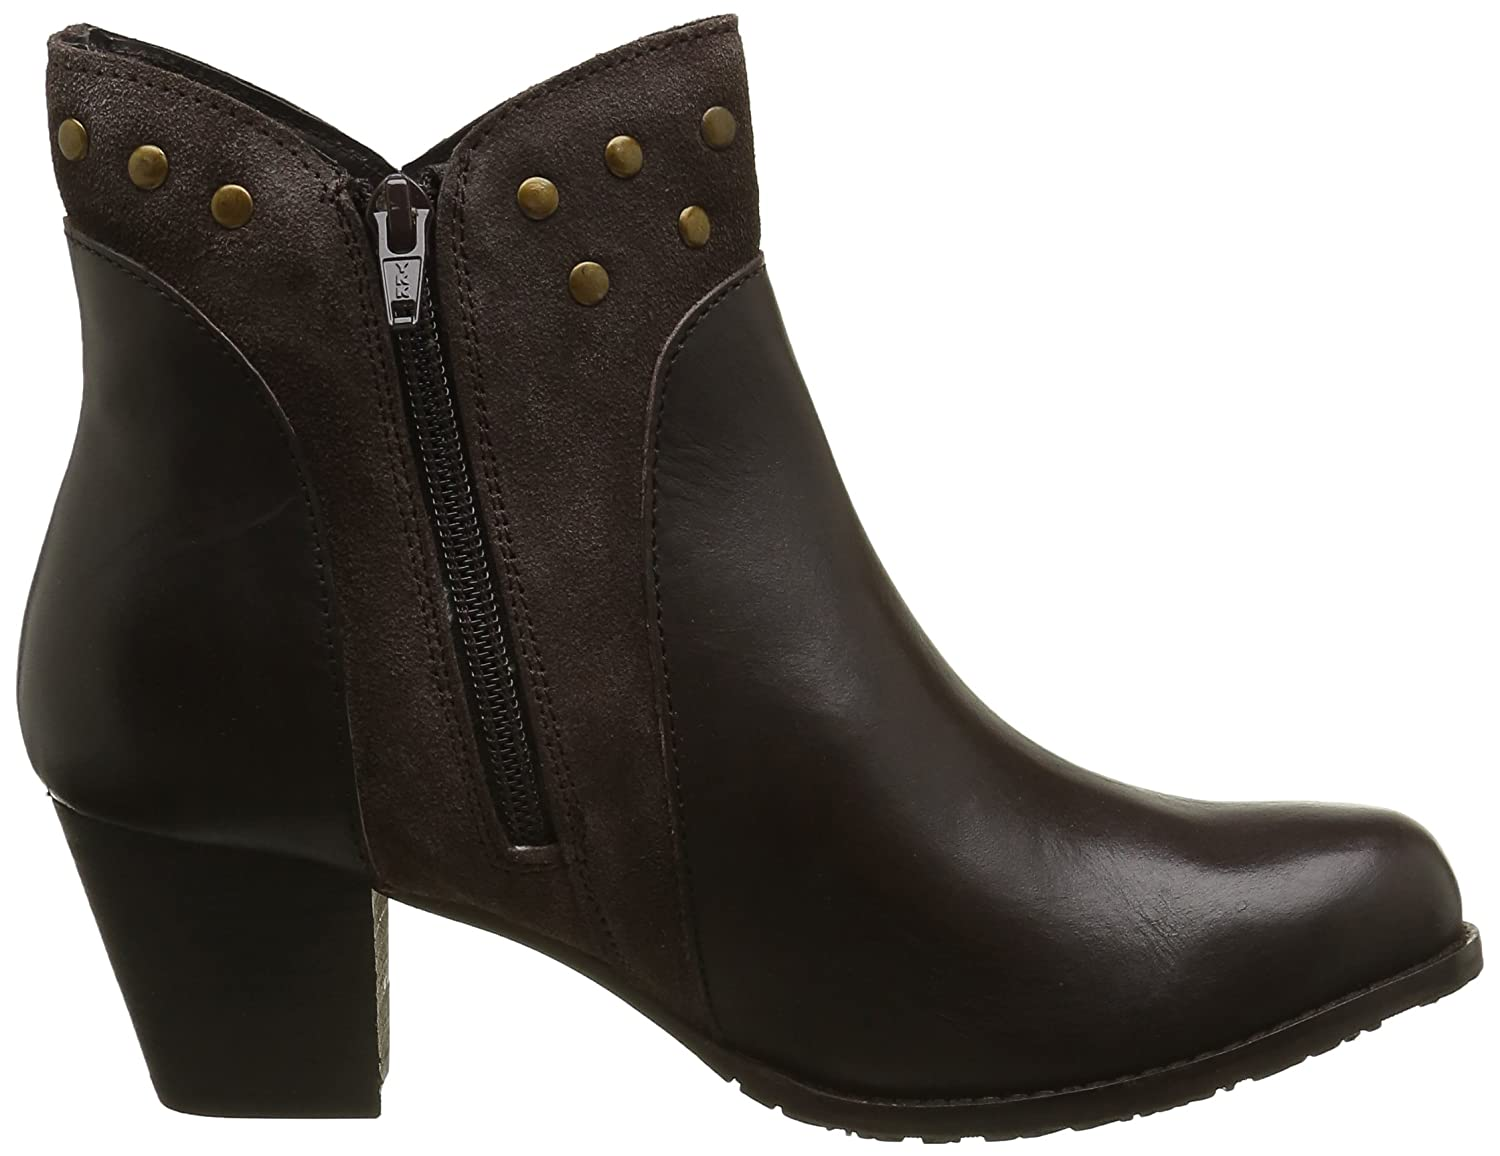 Hush Puppies Kris, Stivali Classici Alla Caviglia Donna: Amazon.it: Scarpe  e borse